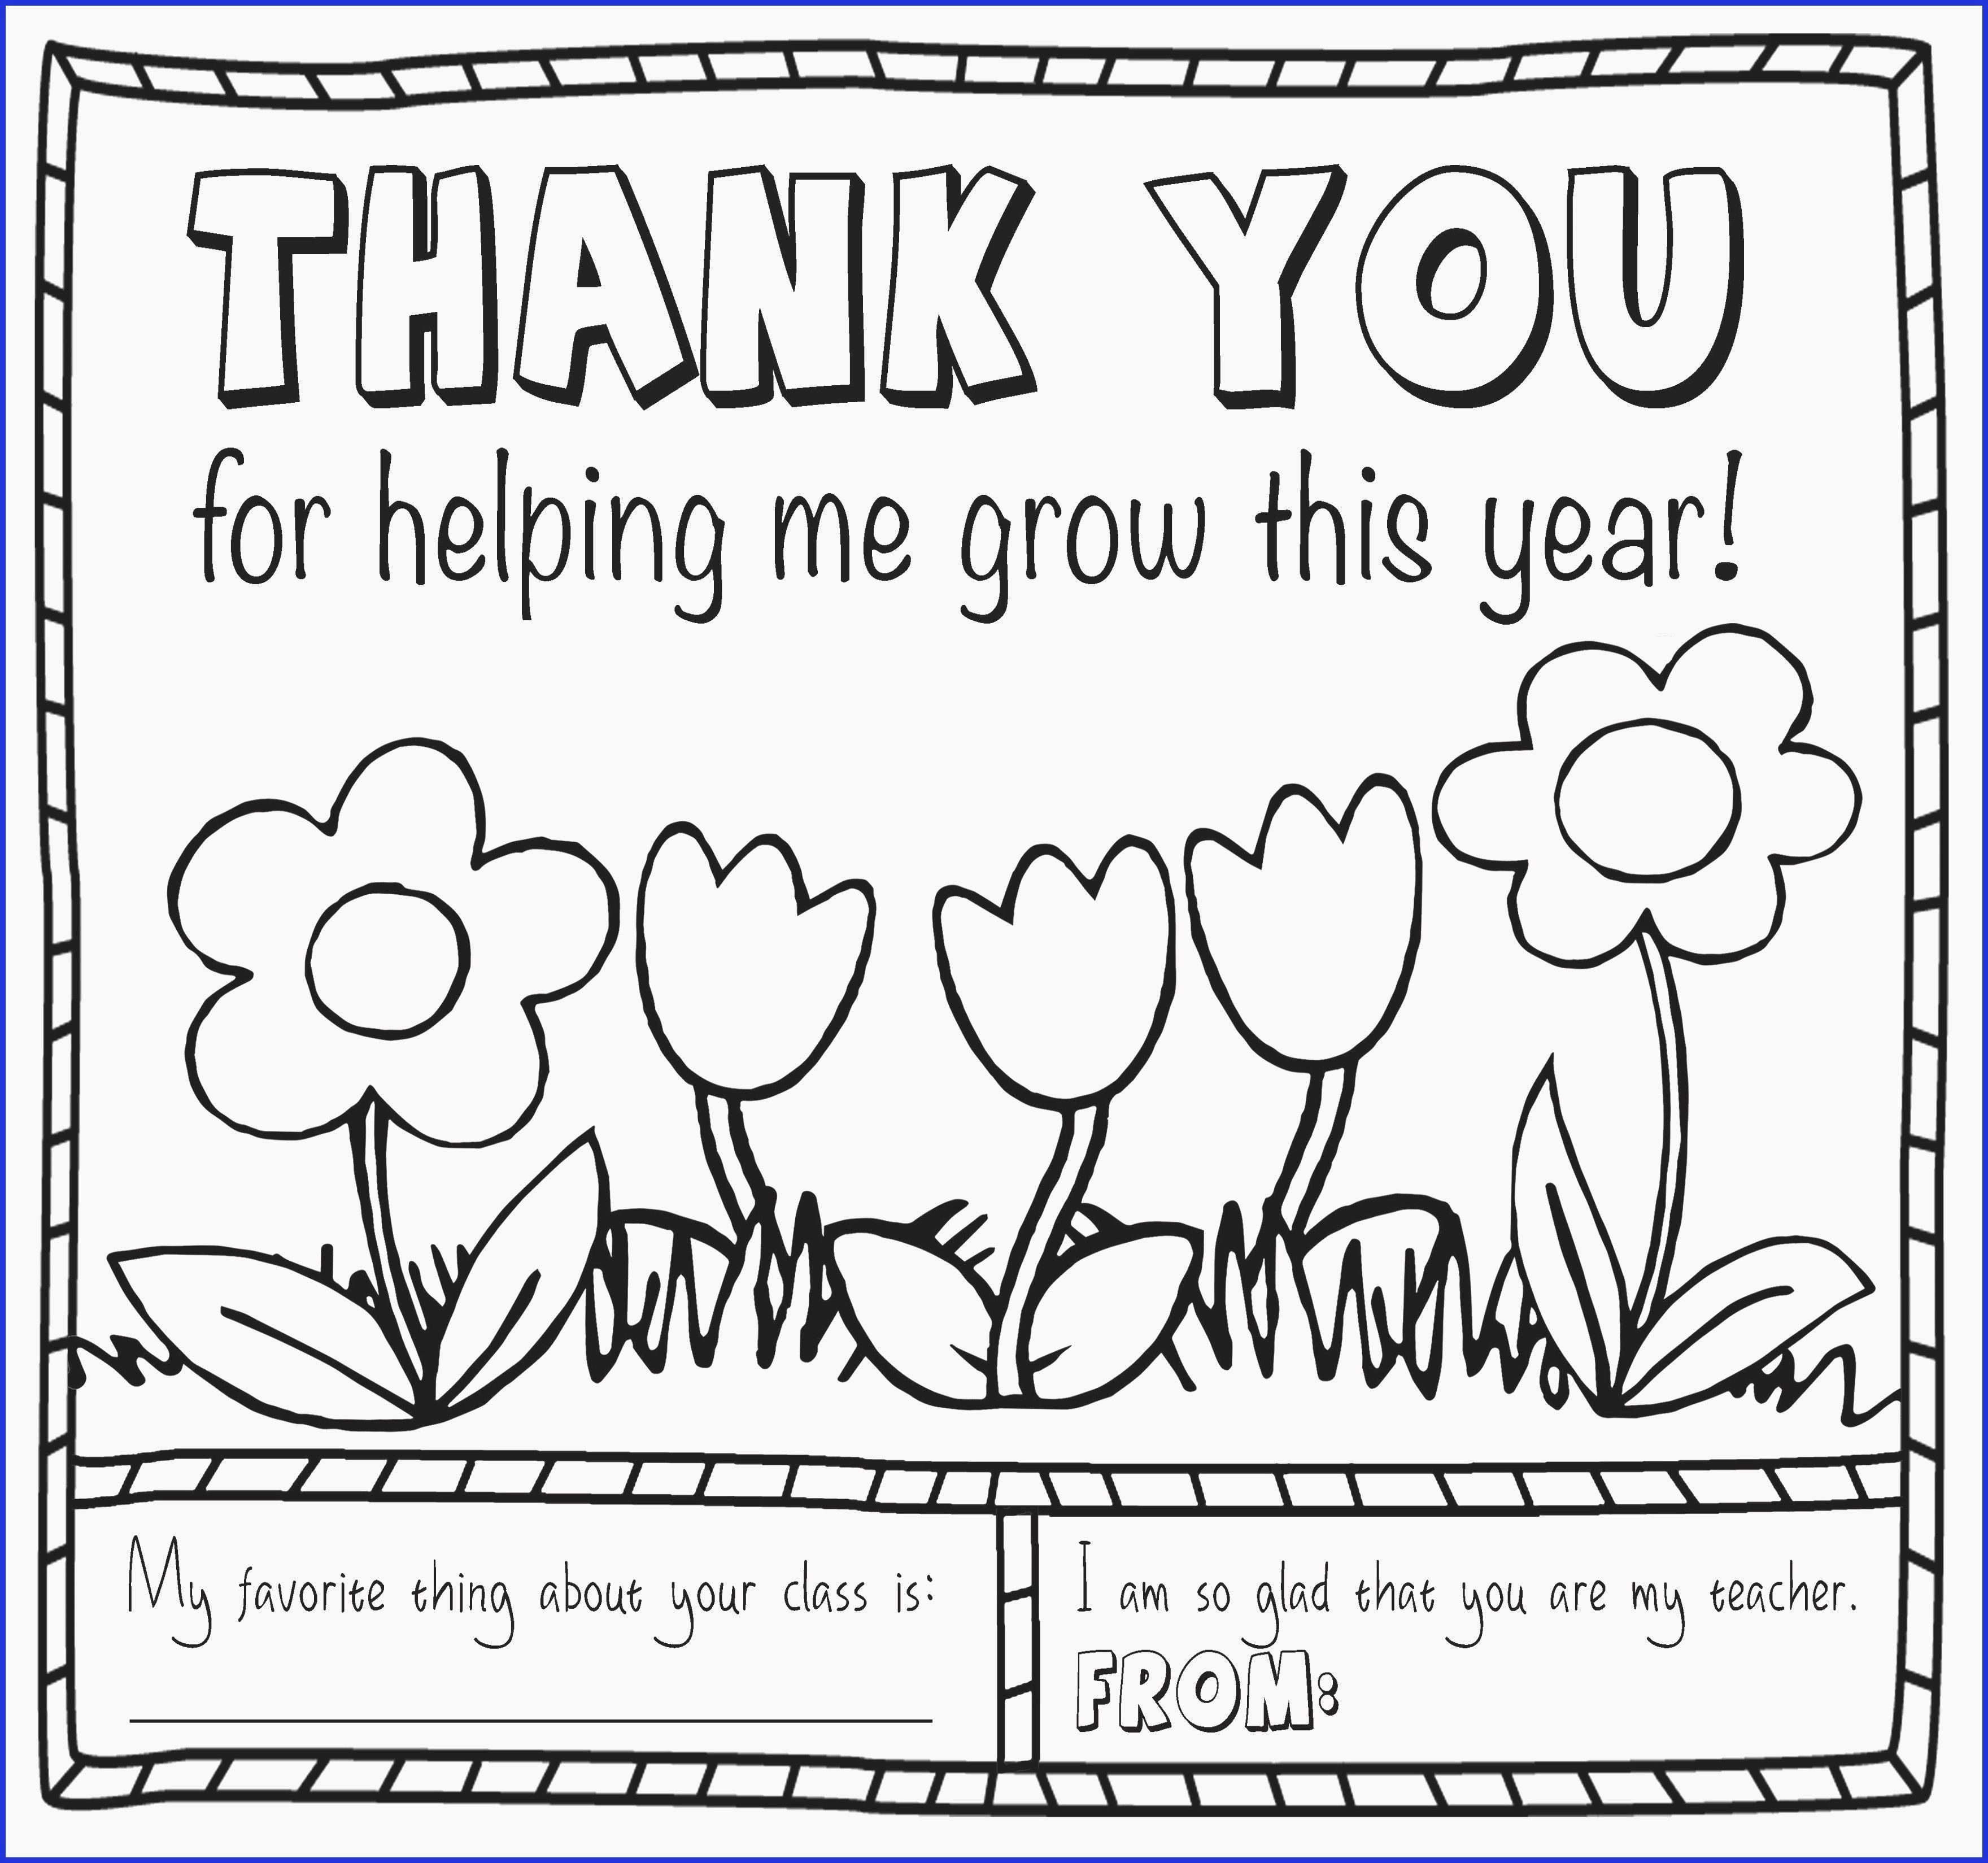 Thank You Teacher Card Beautiful Coloring Pages Thank You Teacher Color In 2020 Teacher Appreciation Printables Teacher Appreciation Cards Coloring Pages For Teenagers